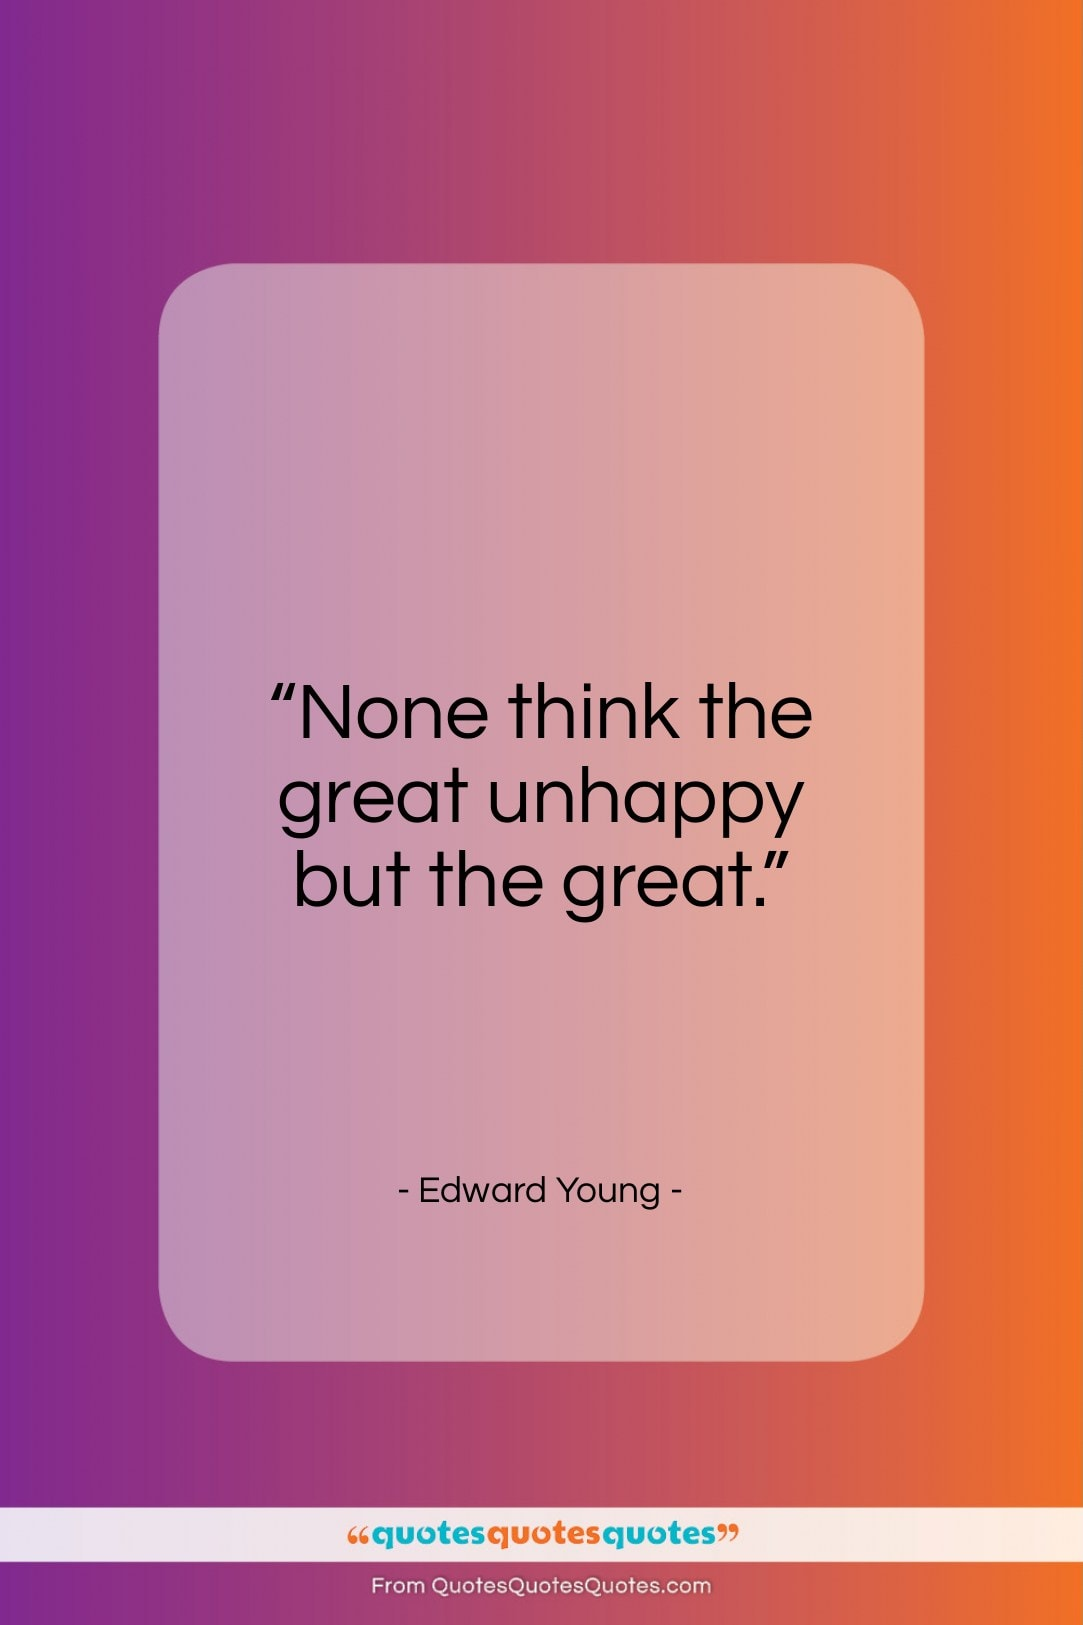 """Edward Young quote: """"None think the great unhappy but the great.""""- at QuotesQuotesQuotes.com"""